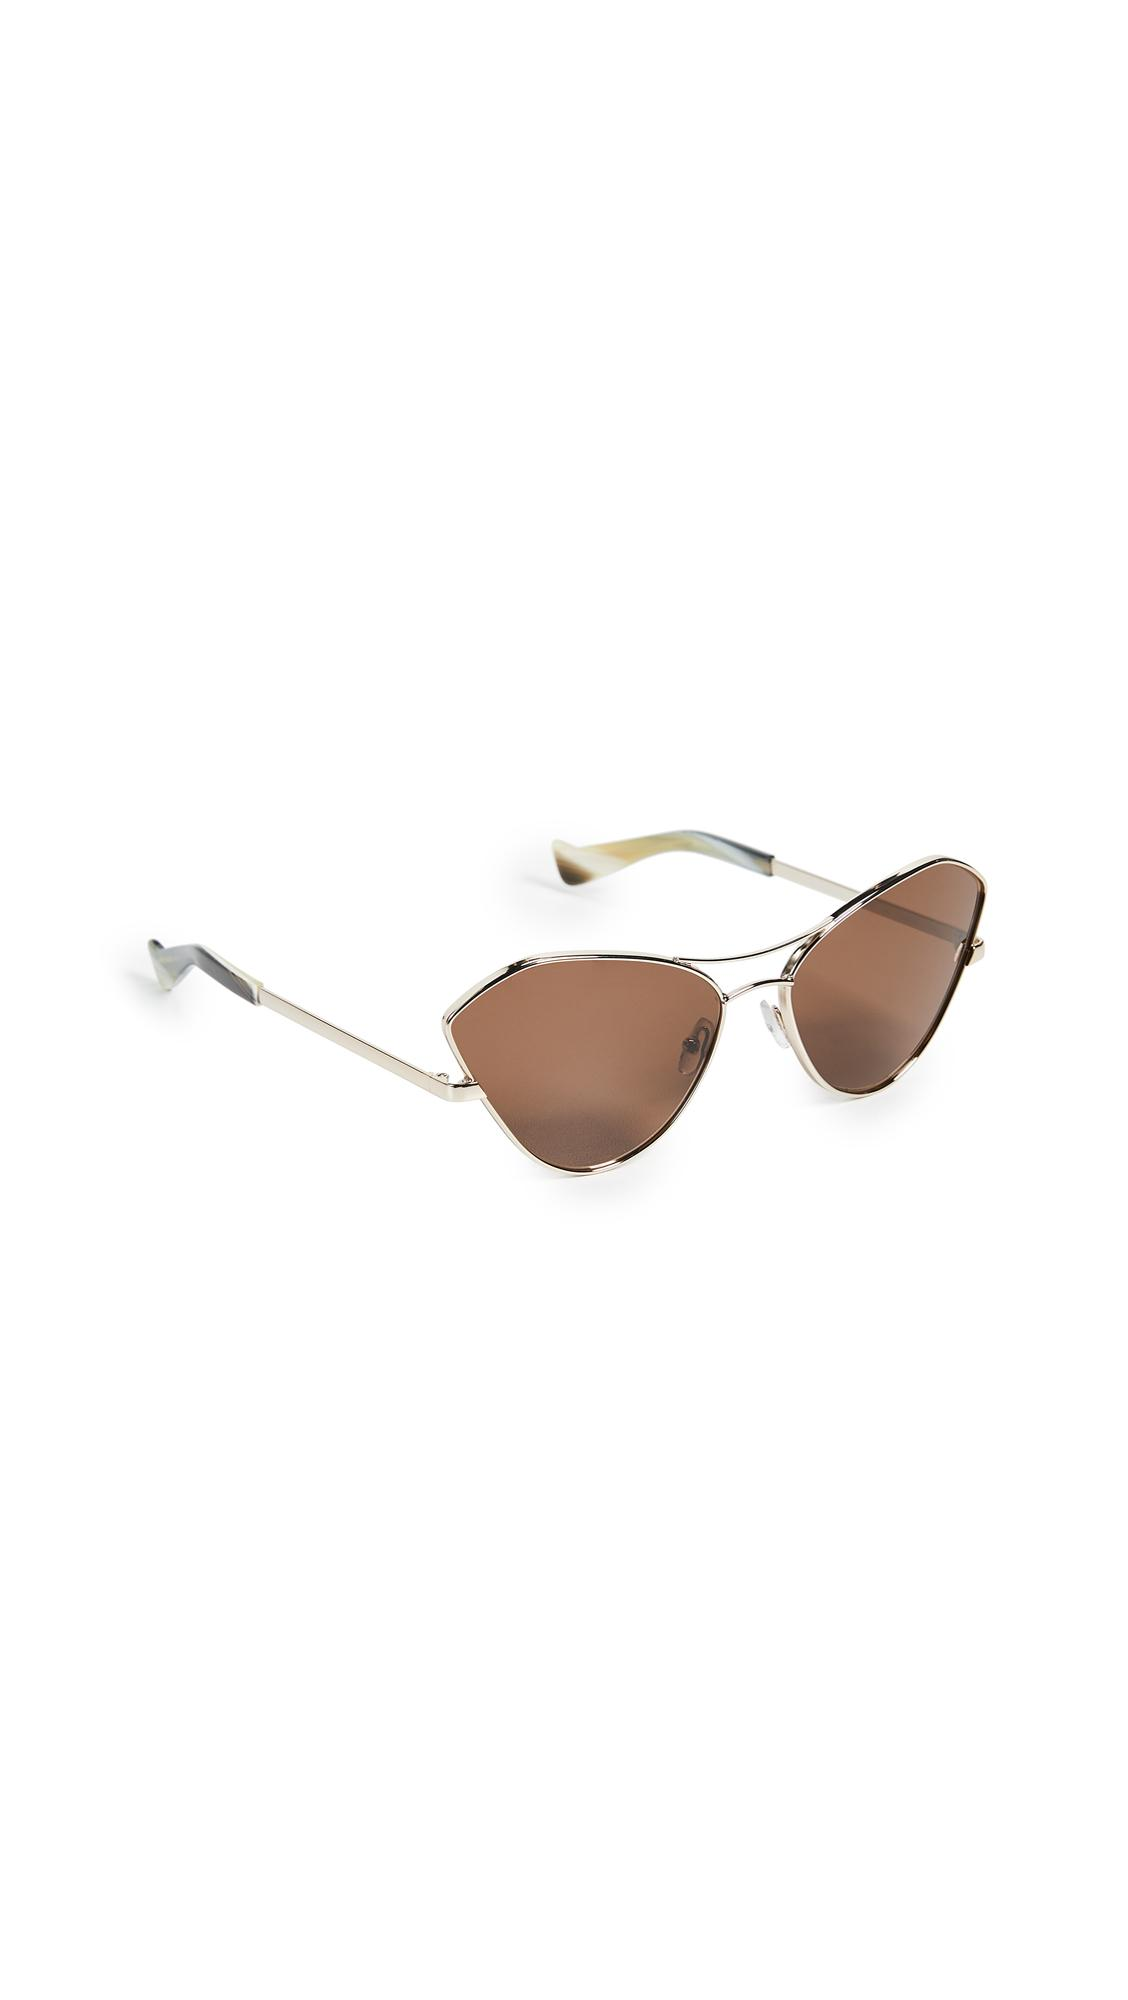 142533fa190 Grey Ant Fluxus Sunglasses In Gold Brown